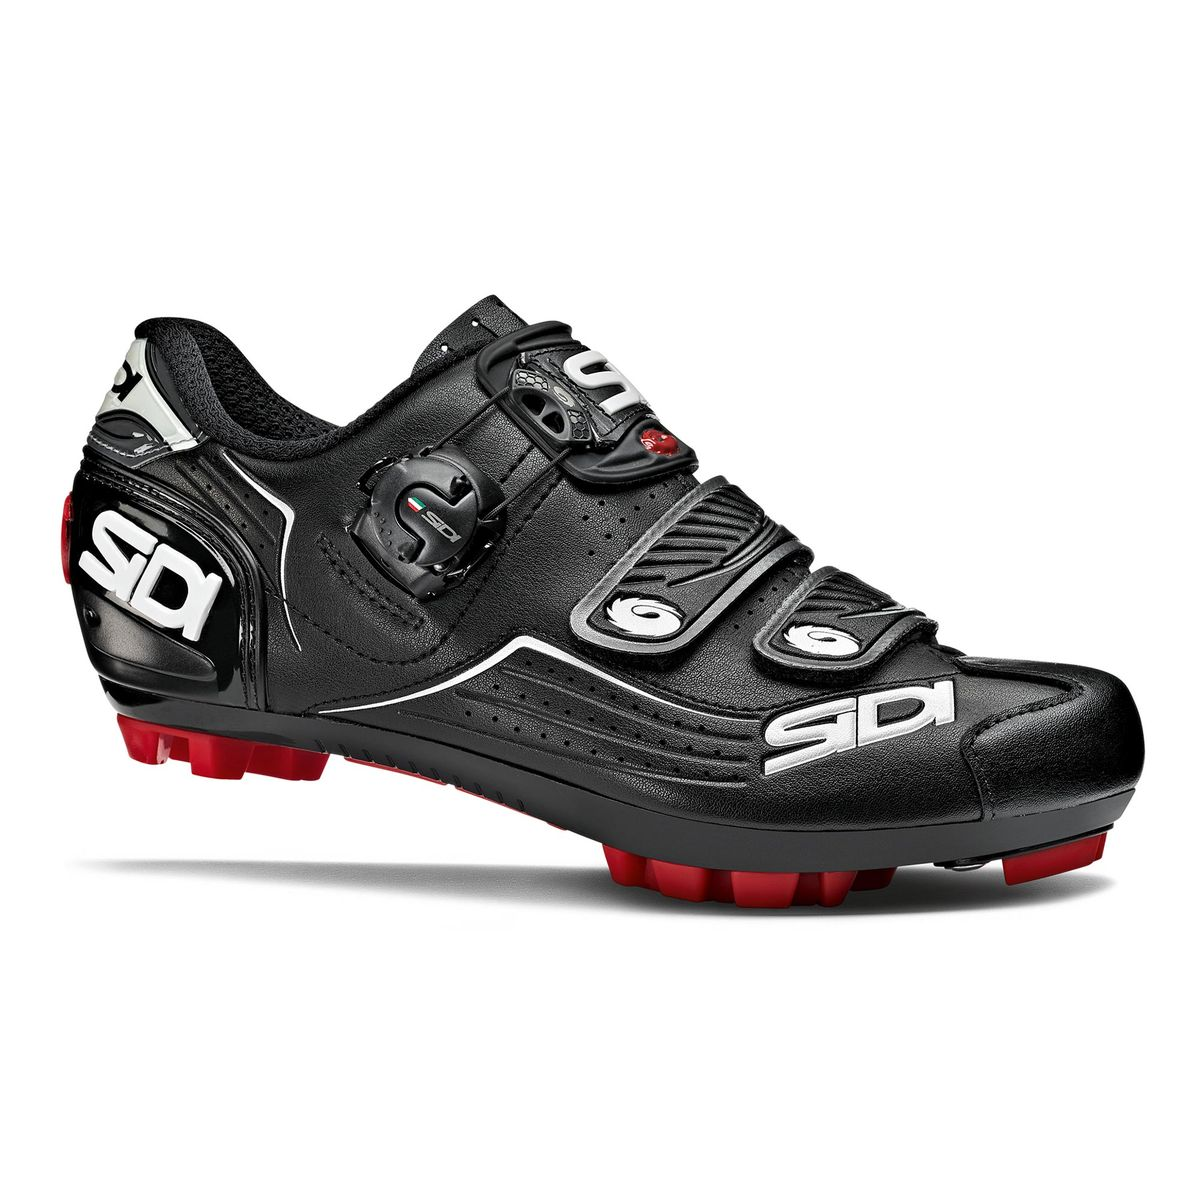 TRACE women's MTB shoes